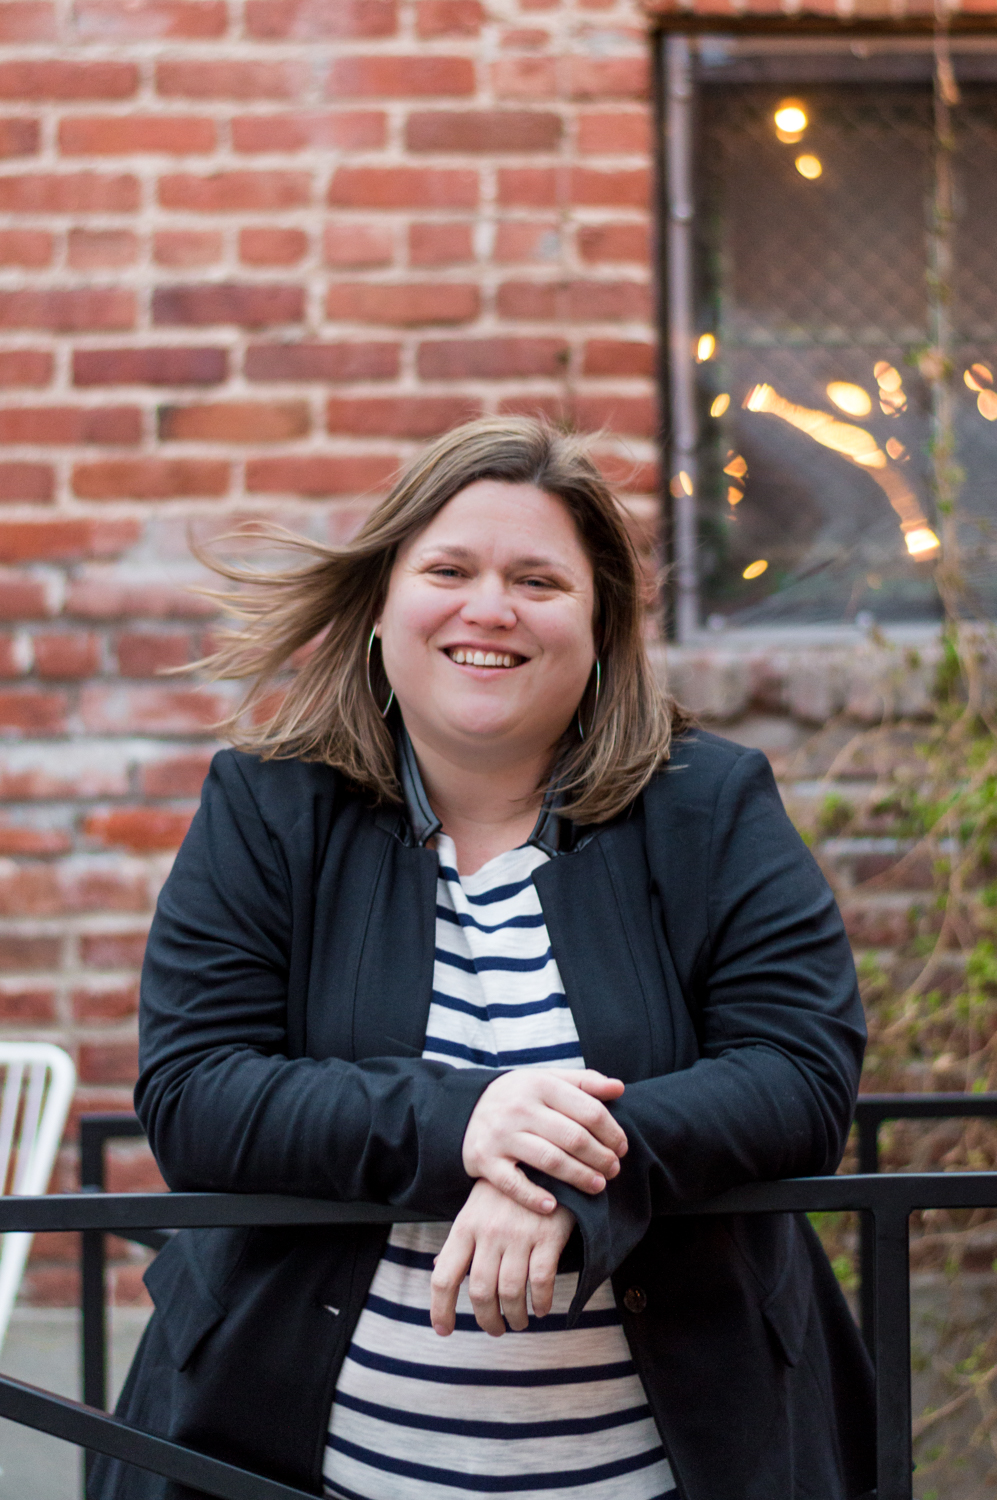 Kelly Kyle - A loyal customer from the beginning, Kelly is now the Director of Operations across all brands.